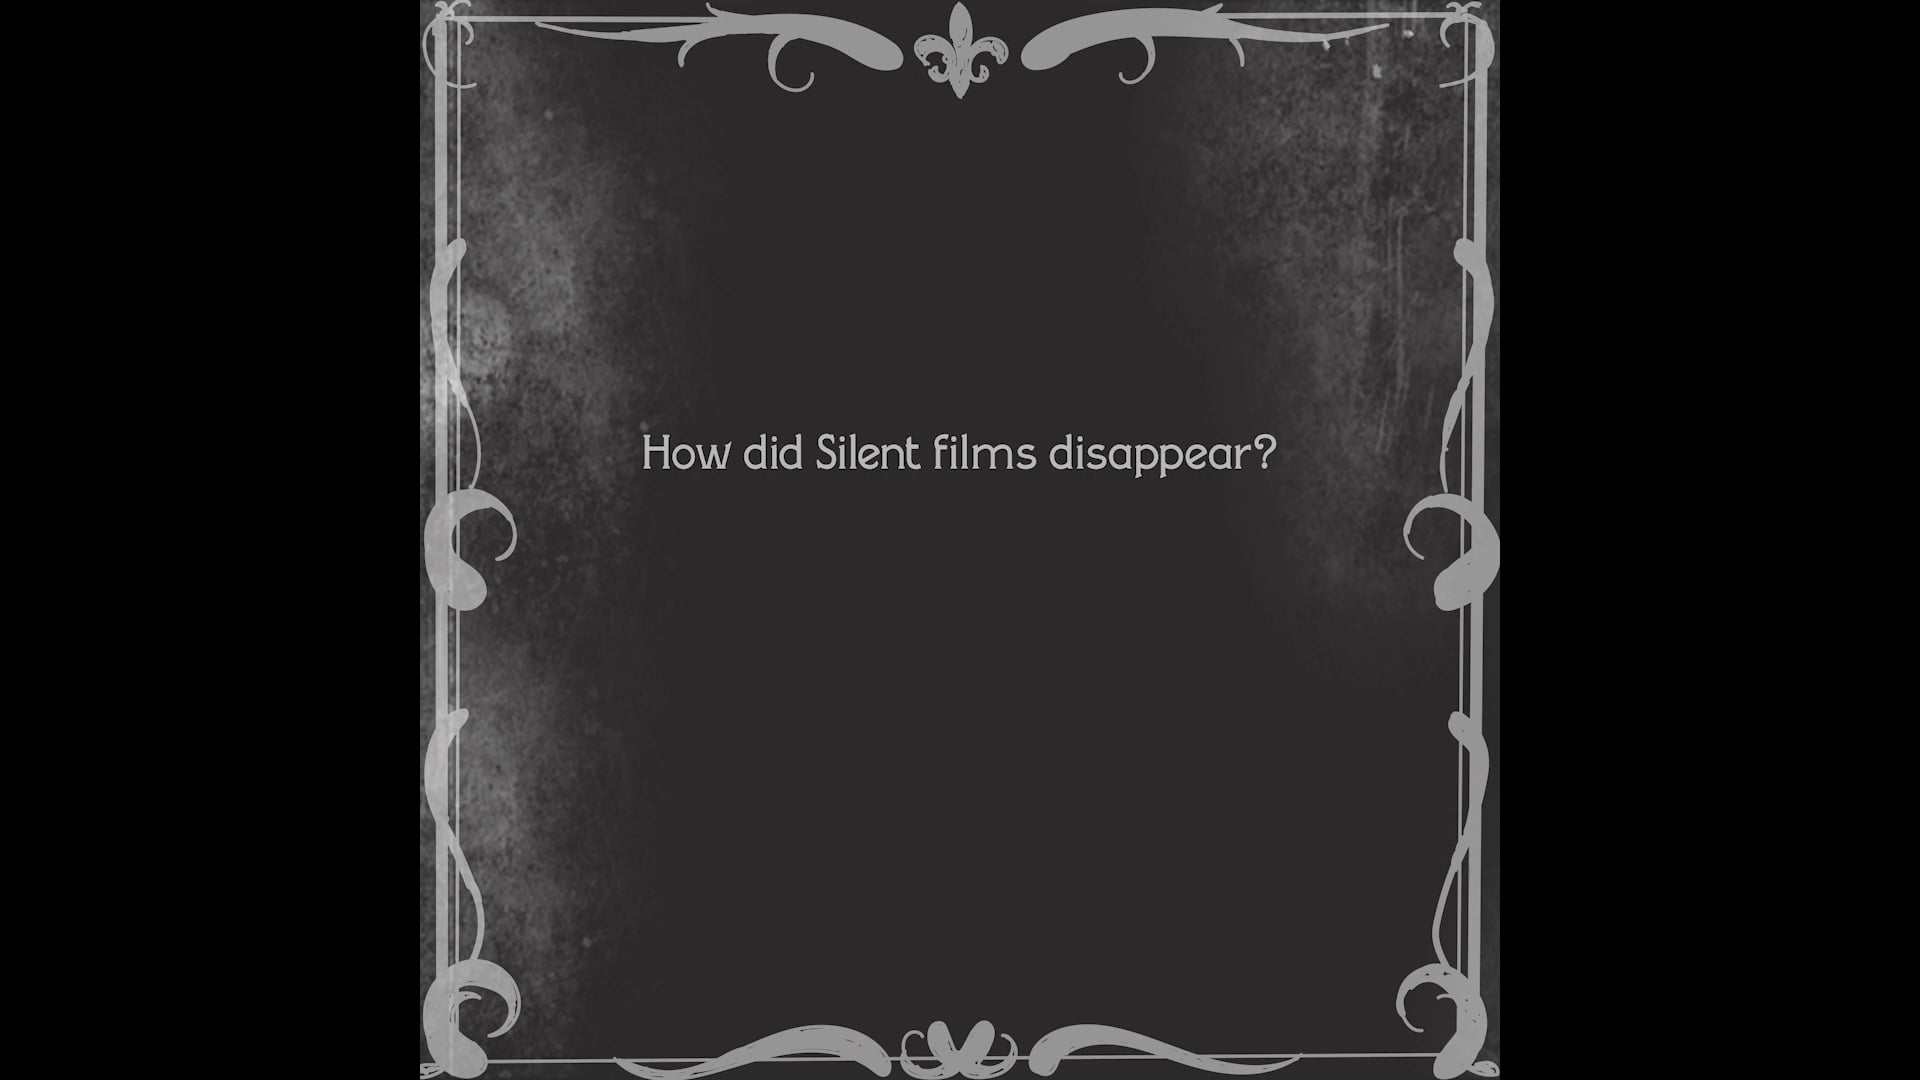 How did silent film disappear